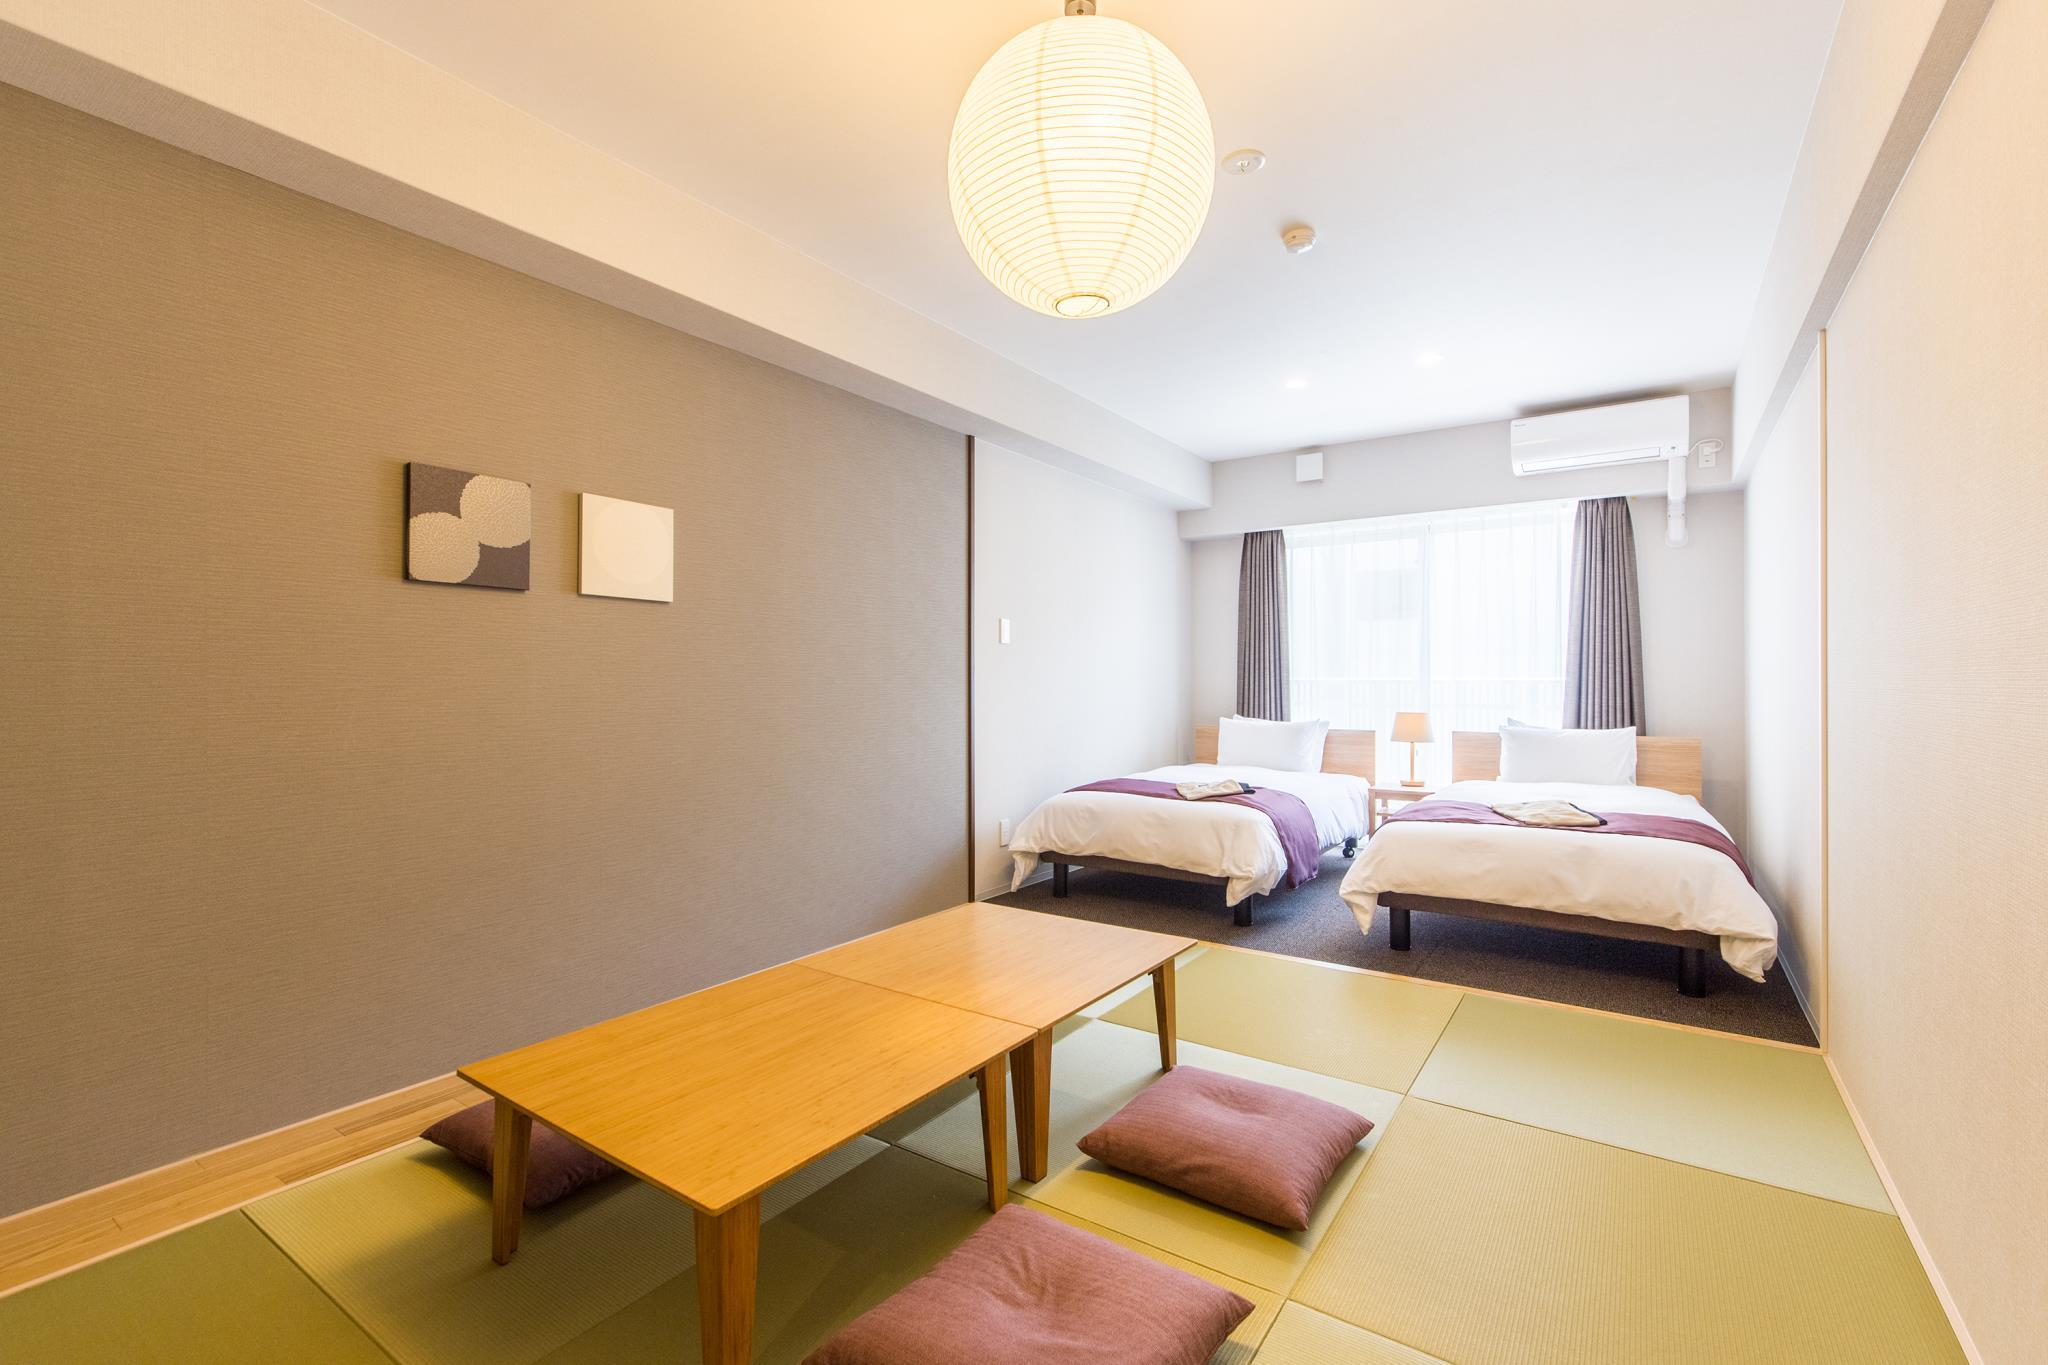 Deluxe Japanese Style Room for 5 People